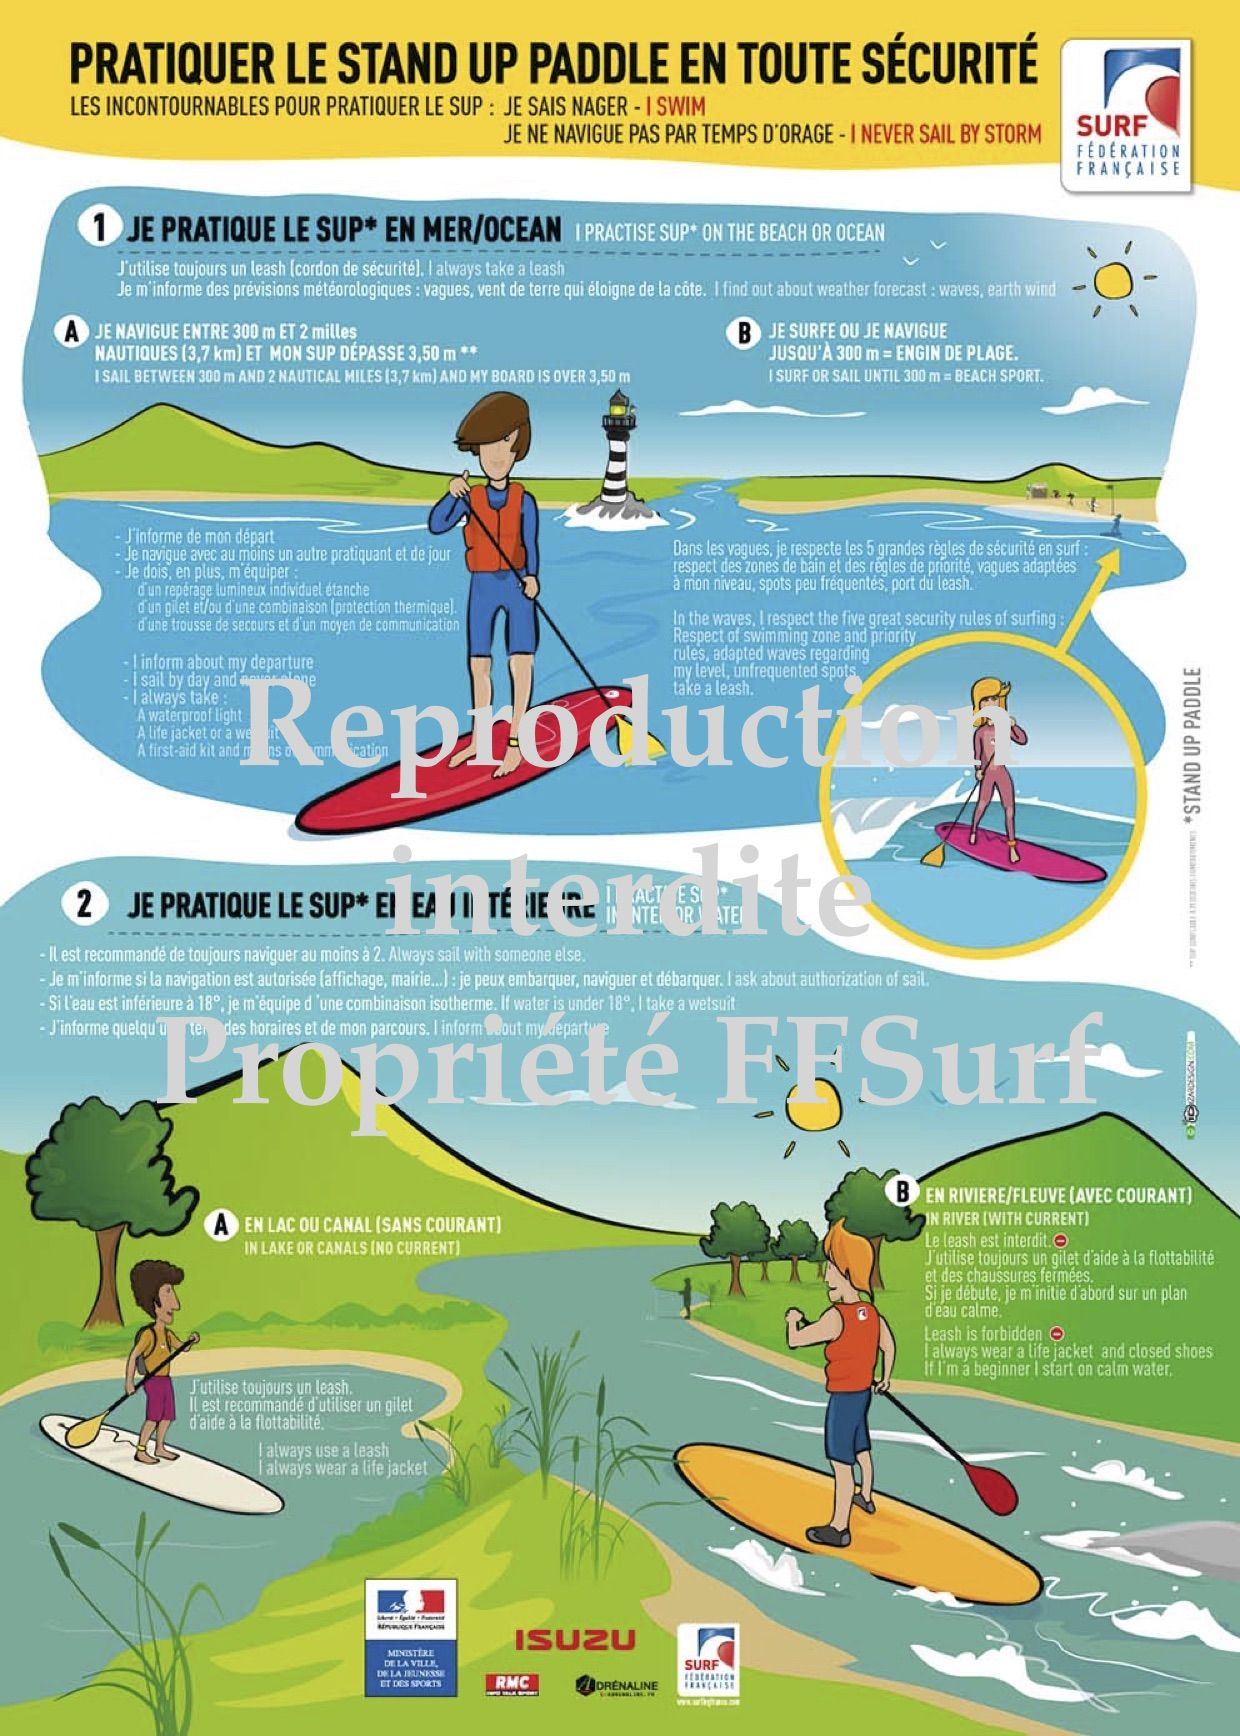 Rappel des règles de sécurité en stand up paddle | Stand up paddle passion, le web magazine du sup.